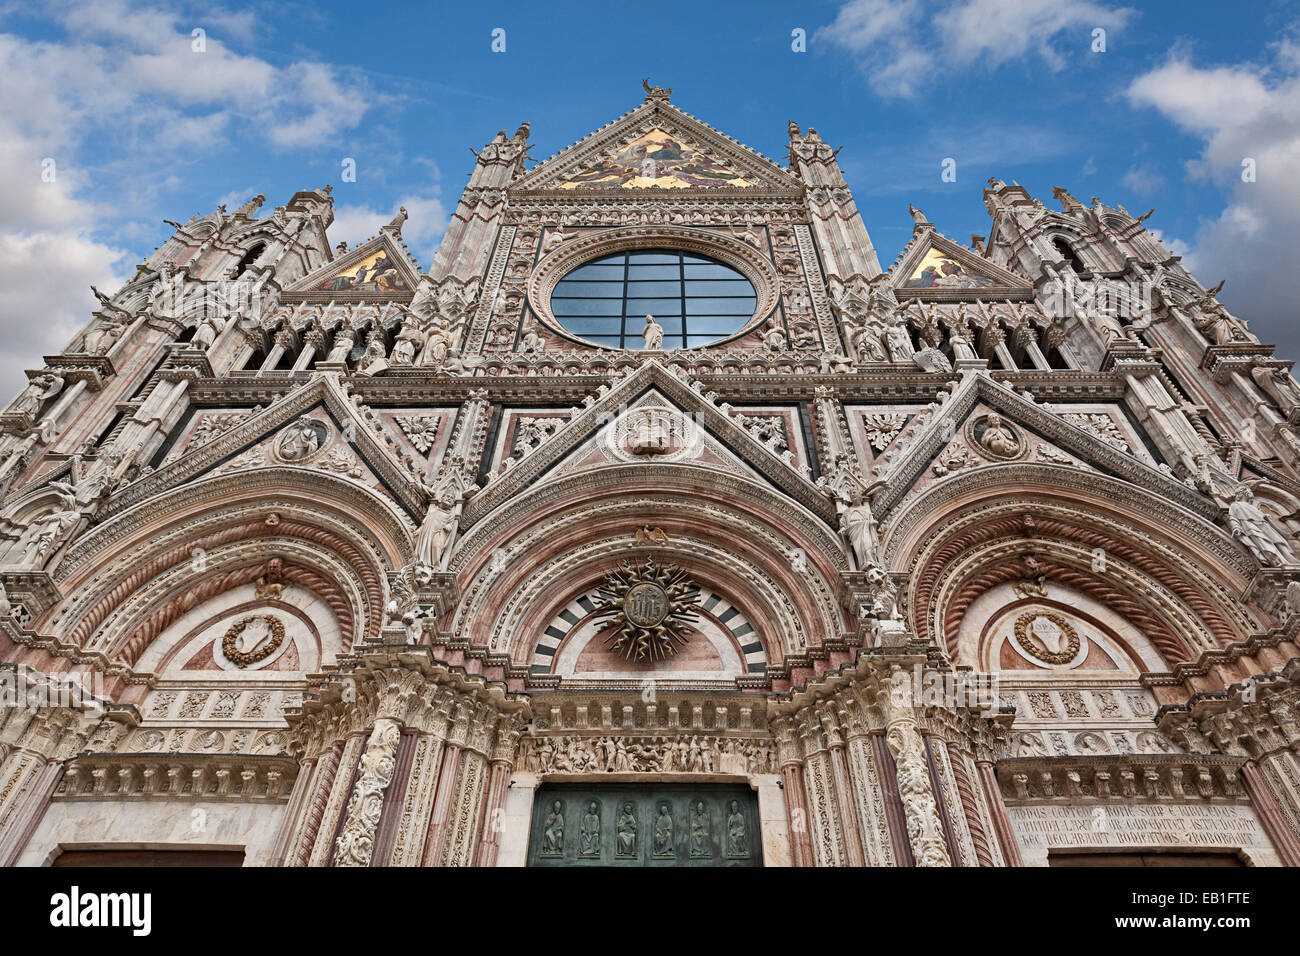 Main facade of Siena Cathedral in Tuscany, Italy. - Stock Image